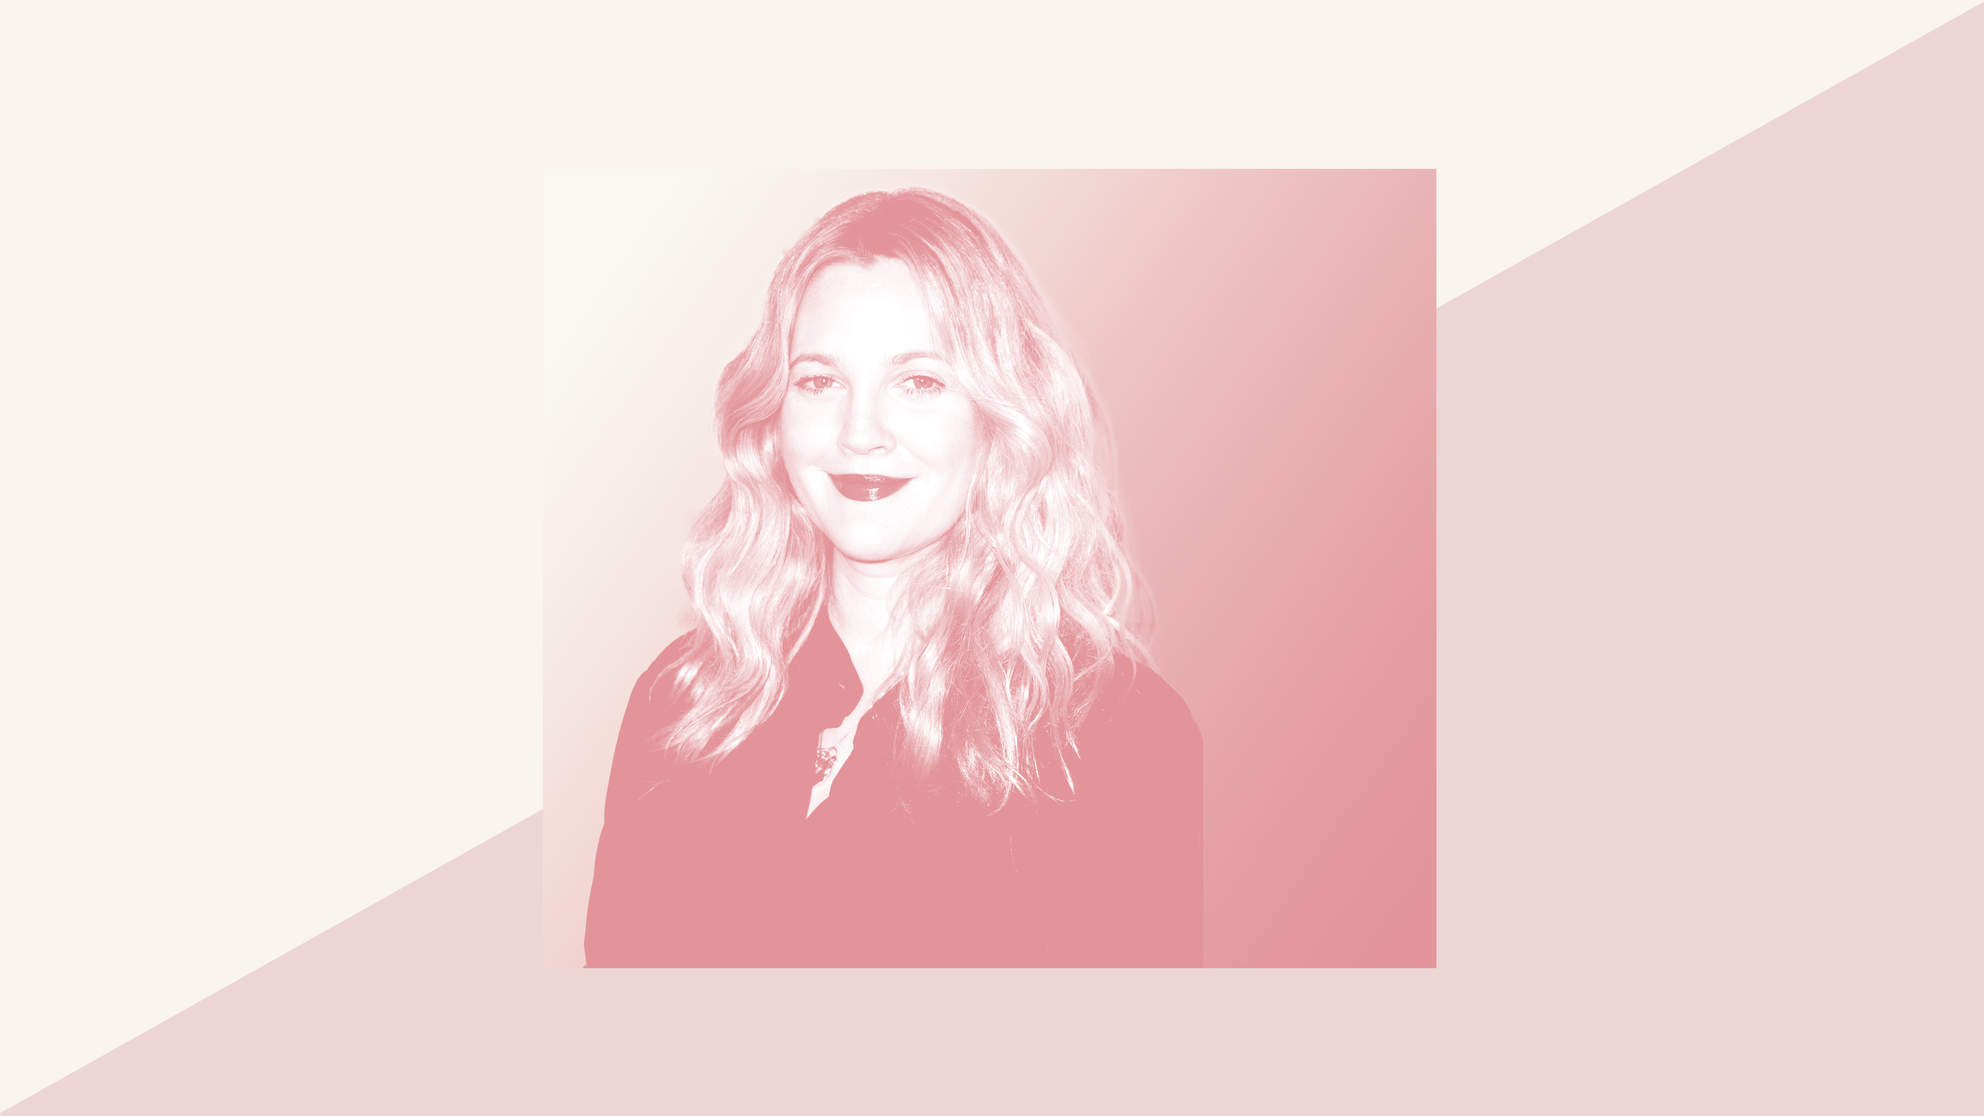 woman health wellbeing drew-barrymore celebrity